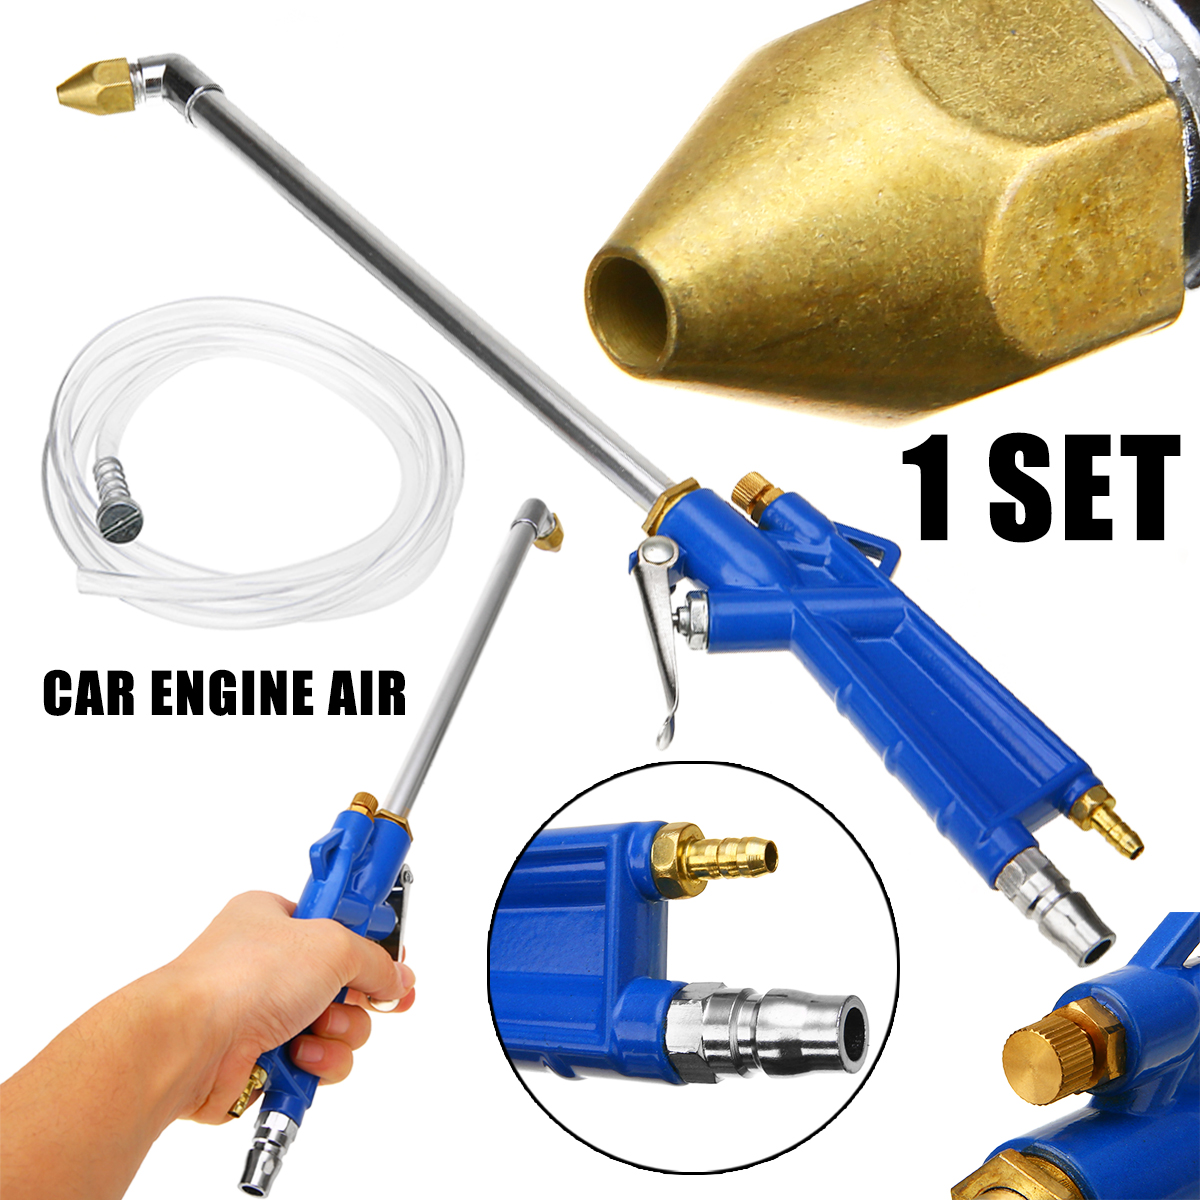 MAYITR Multifunctional Air Pressure Washing Spray Dust Oil Cleaner + 300mm Blowing Dust Pipe Kits for Car Engine Home Warehouse